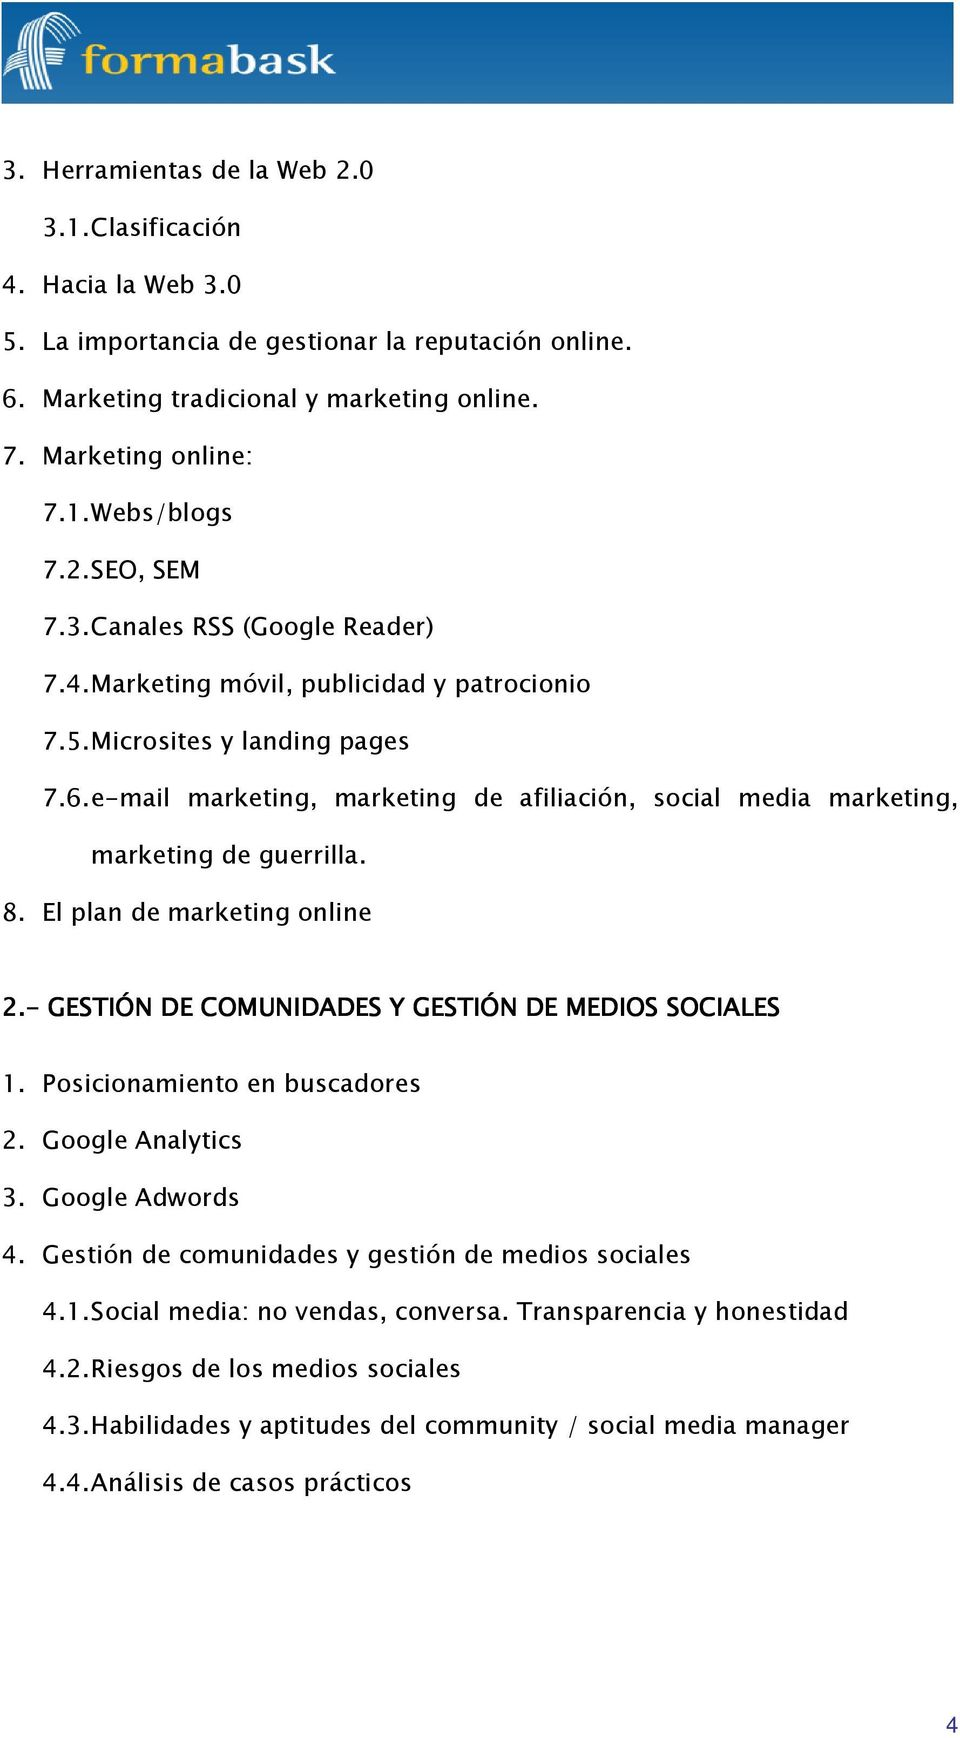 e-mail marketing, marketing de afiliación, social media marketing, marketing de guerrilla. 8. El plan de marketing online 2.- GESTIÓN DE COMUNIDADES Y GESTIÓN DE MEDIOS SOCIALES 1.